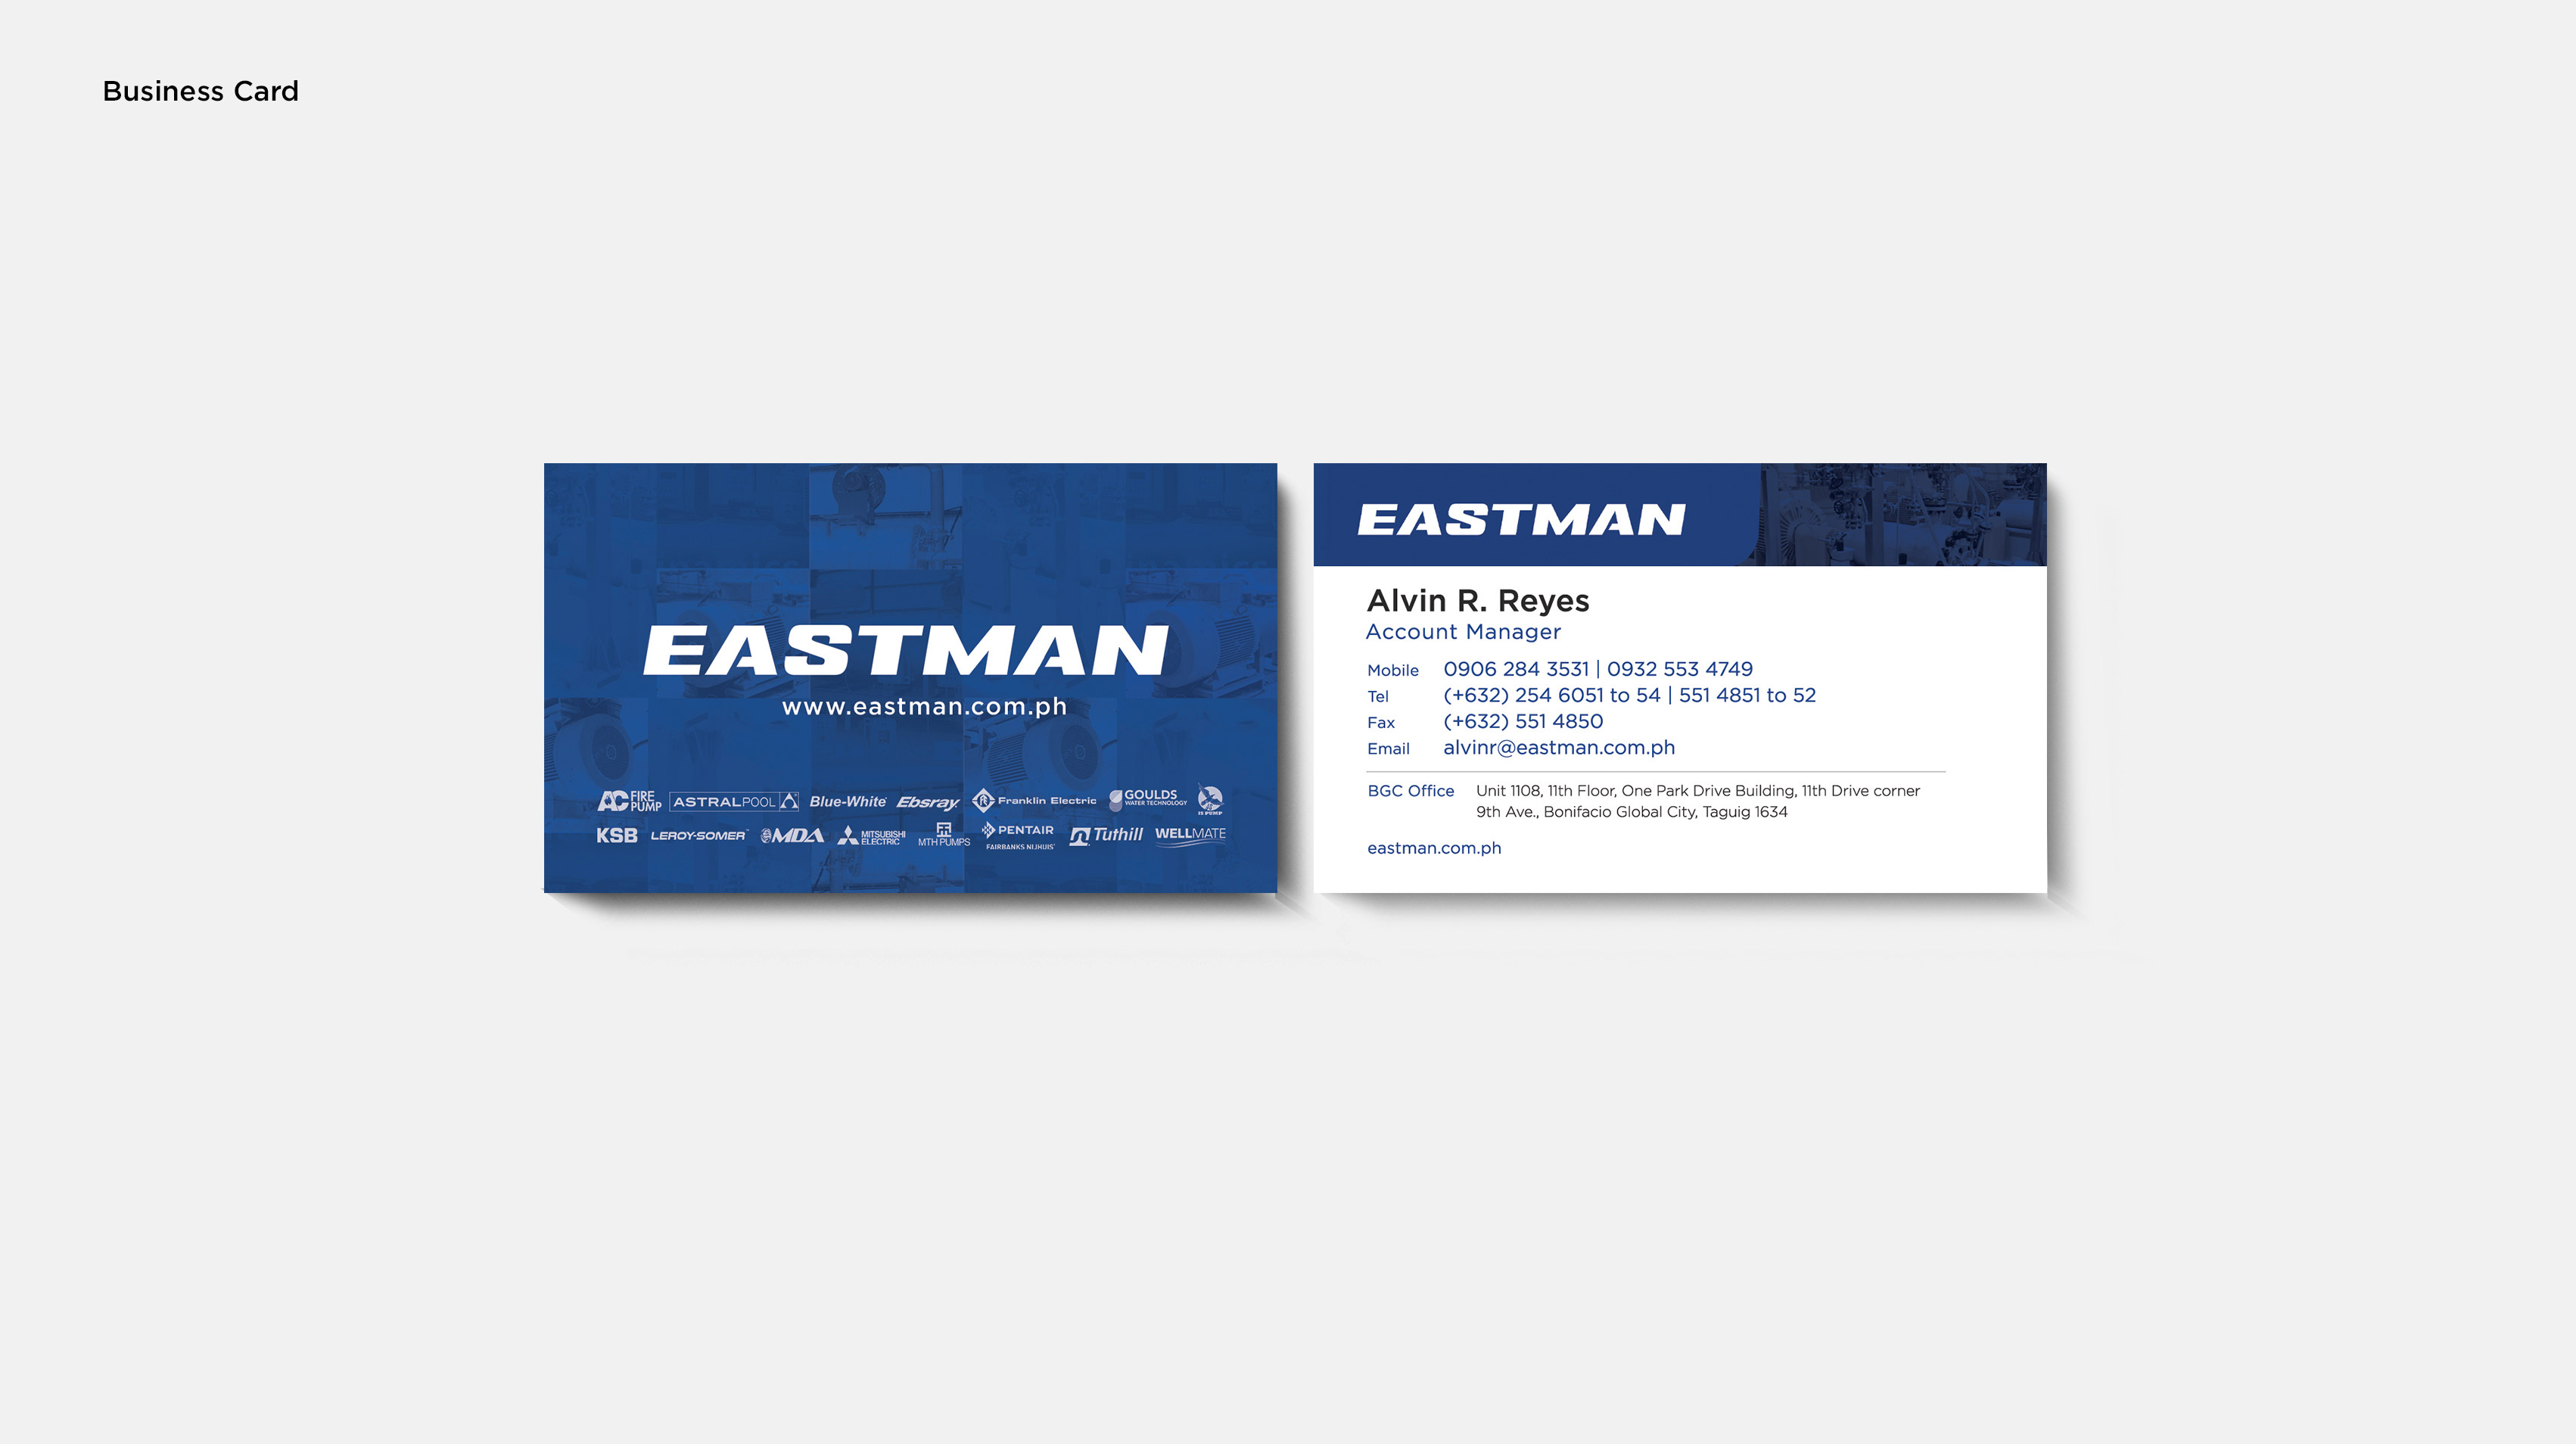 16-Eastman-Collaterals-BCard